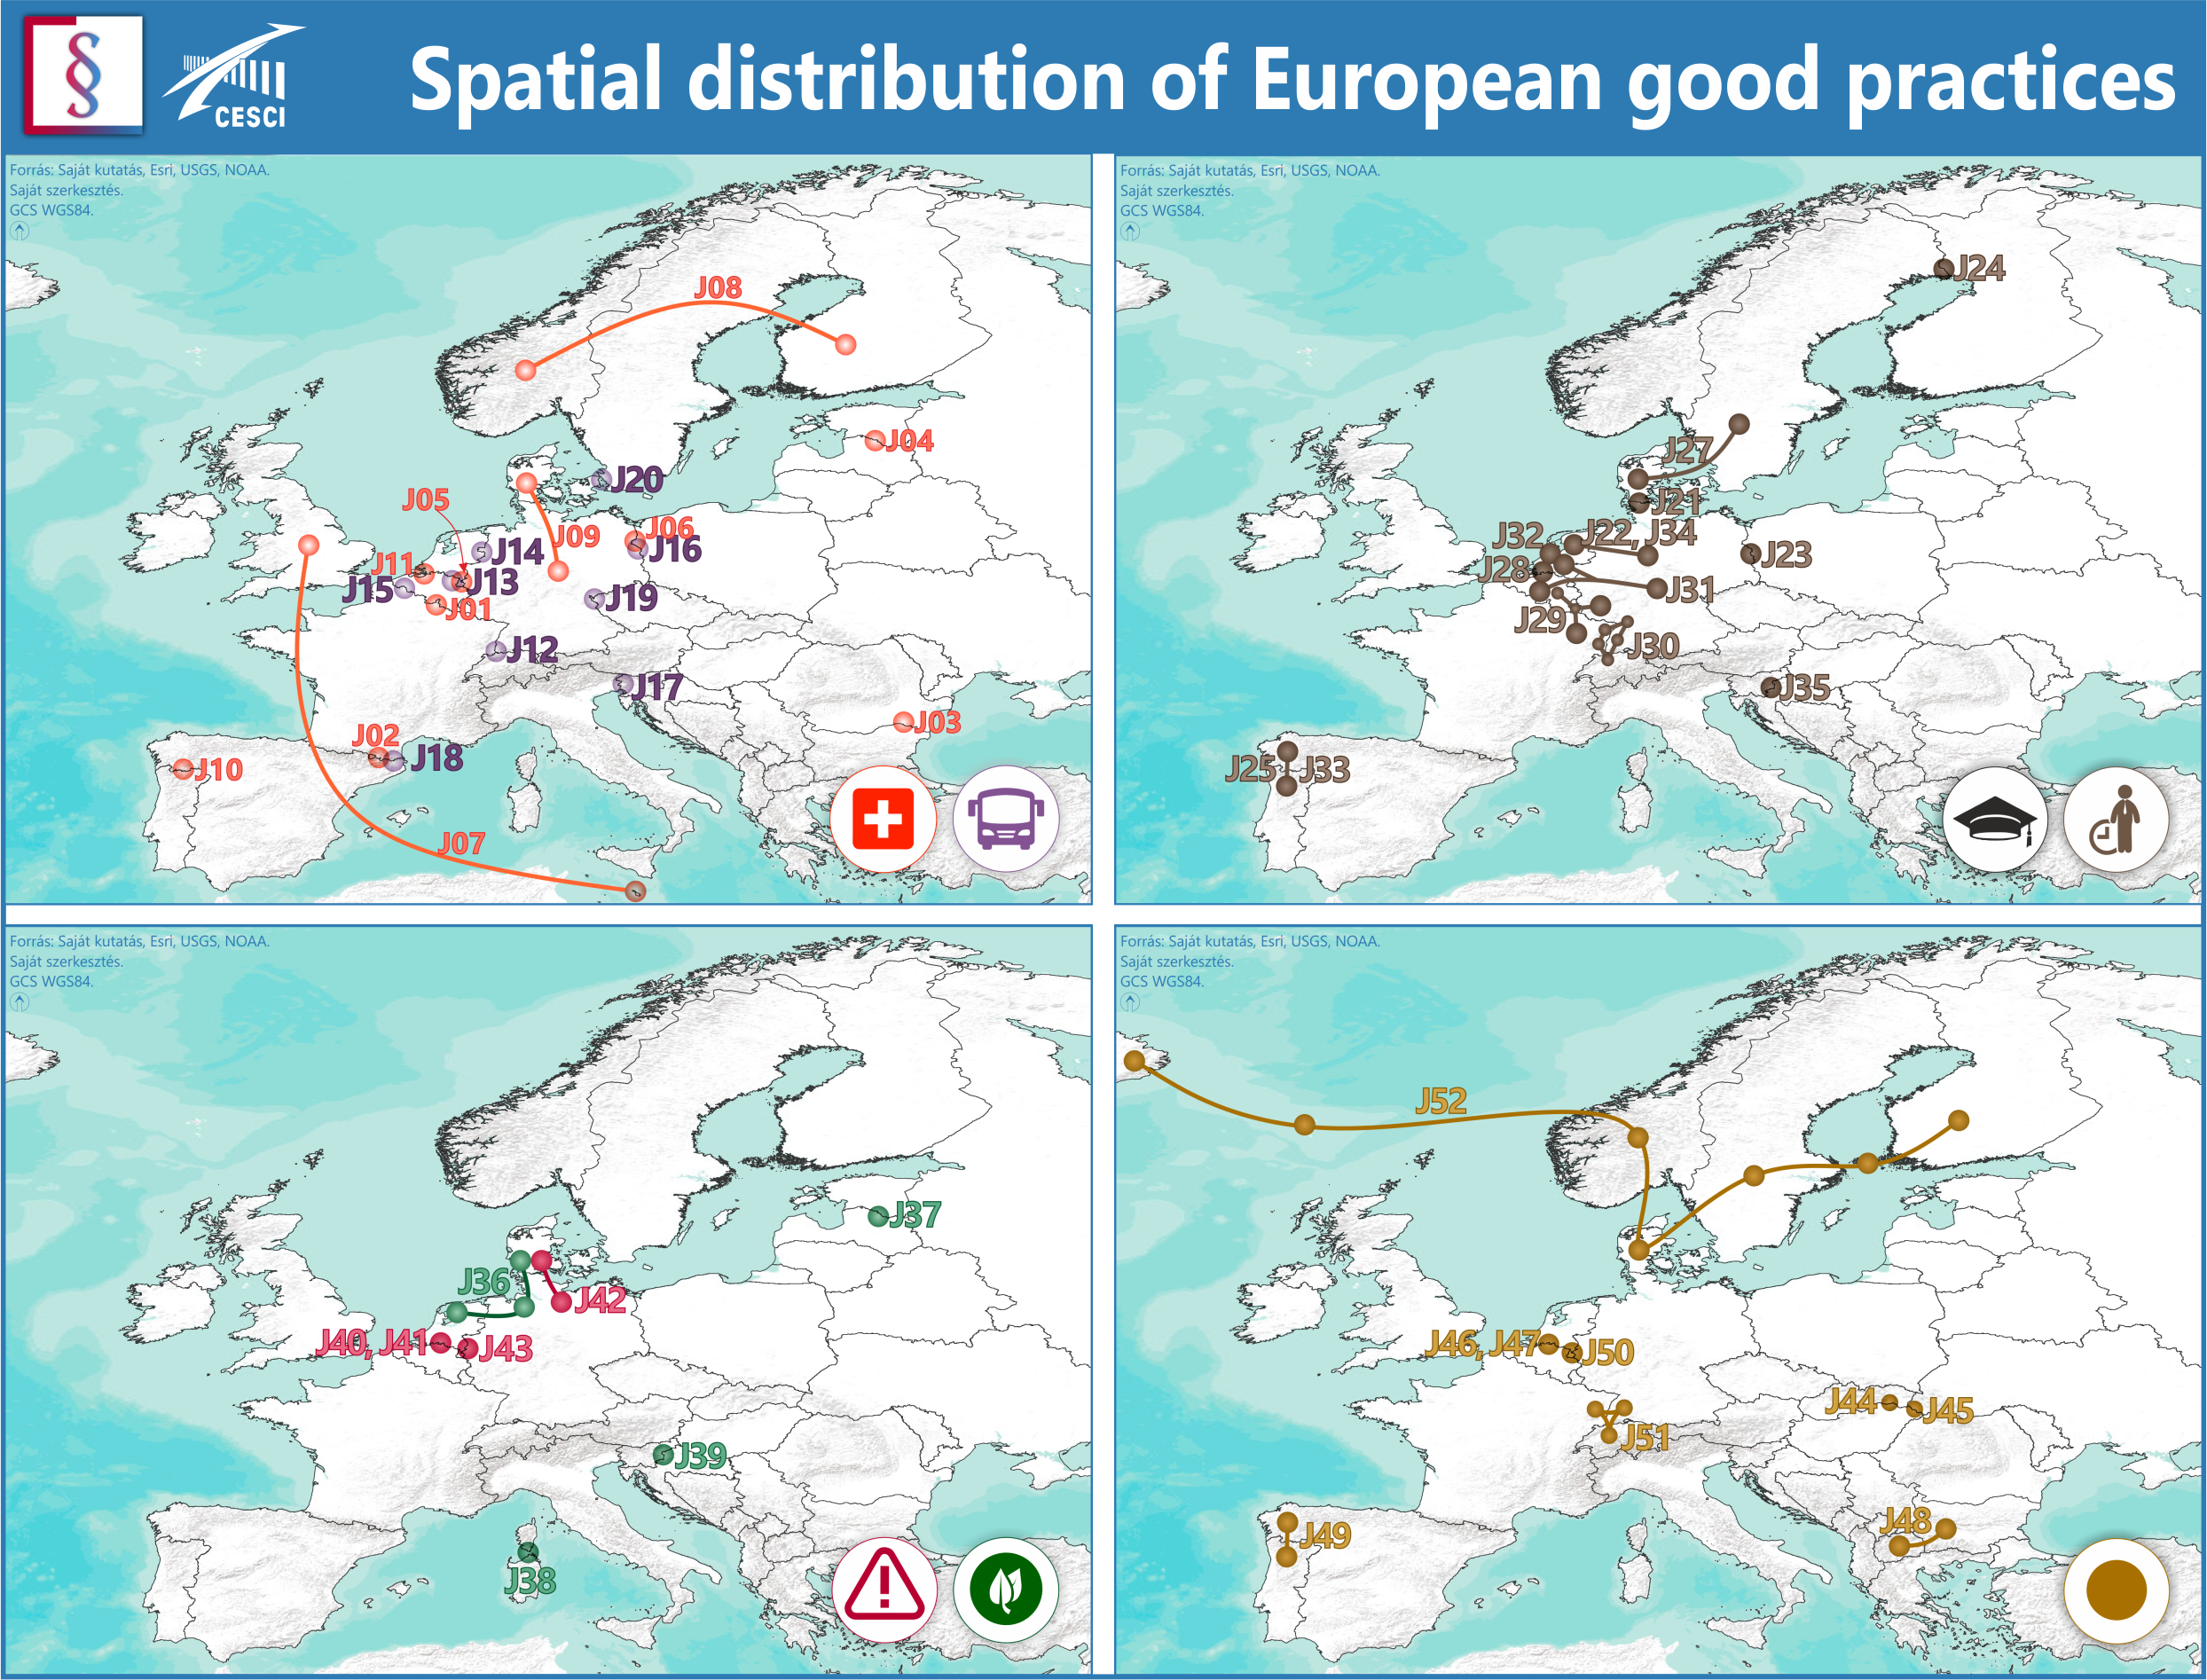 Spatial distribution of European good practices